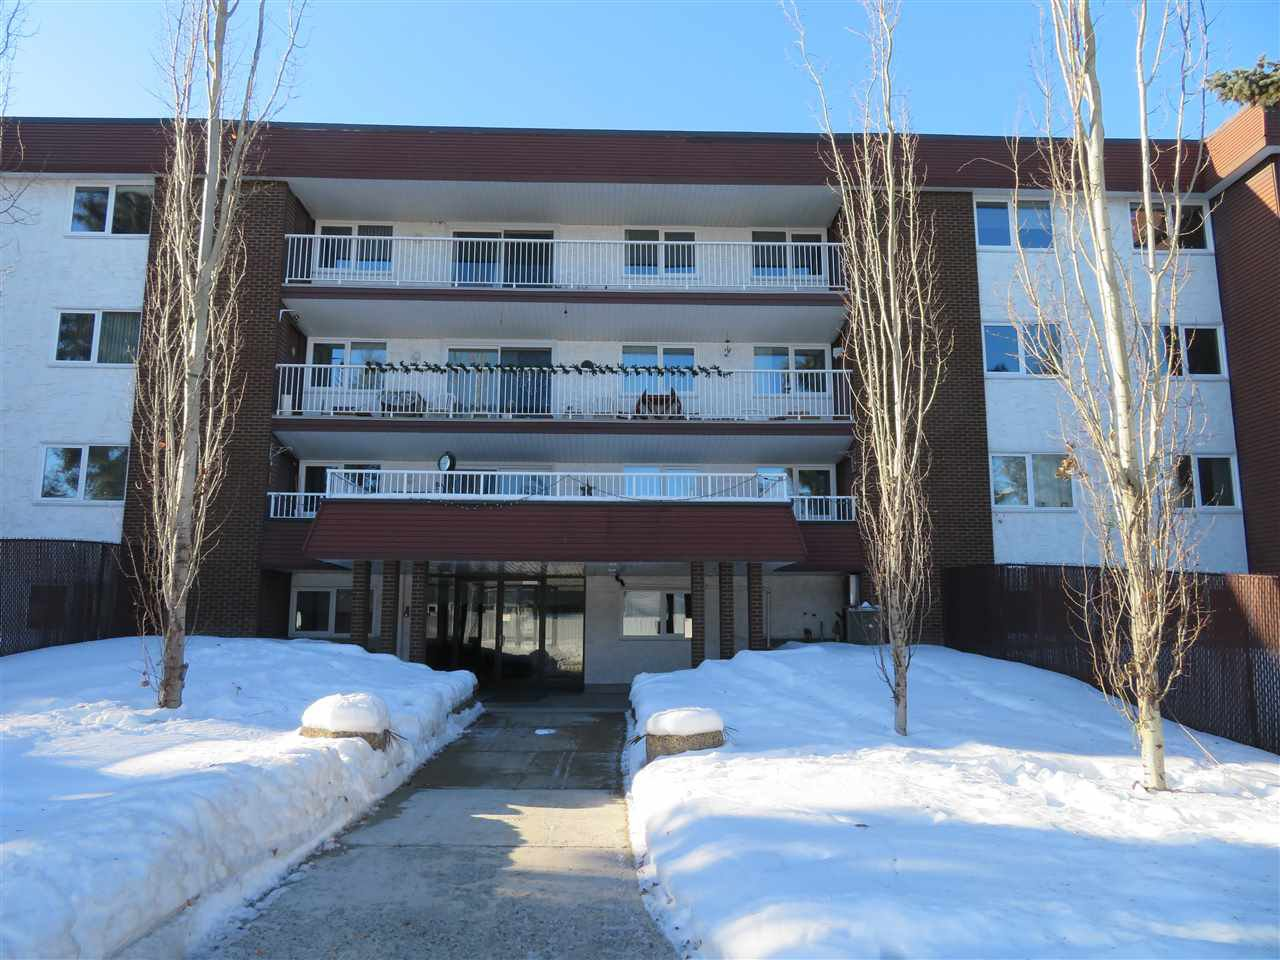 Main Photo: 401 14810 51 Avenue in Edmonton: Zone 14 Condo for sale : MLS®# E4185546